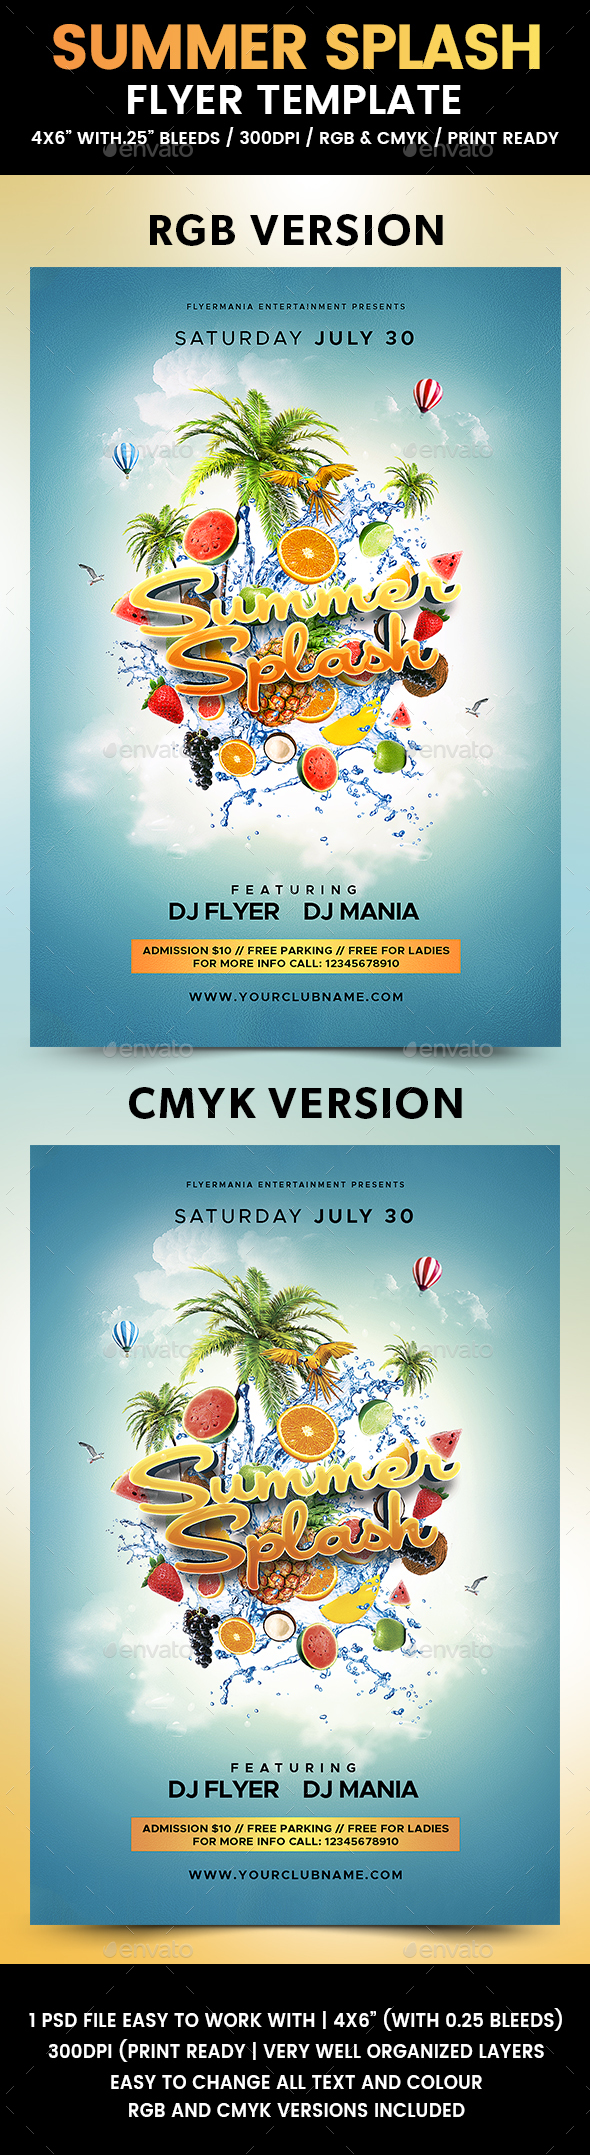 Summer Splash Flyer Template - Clubs & Parties Events